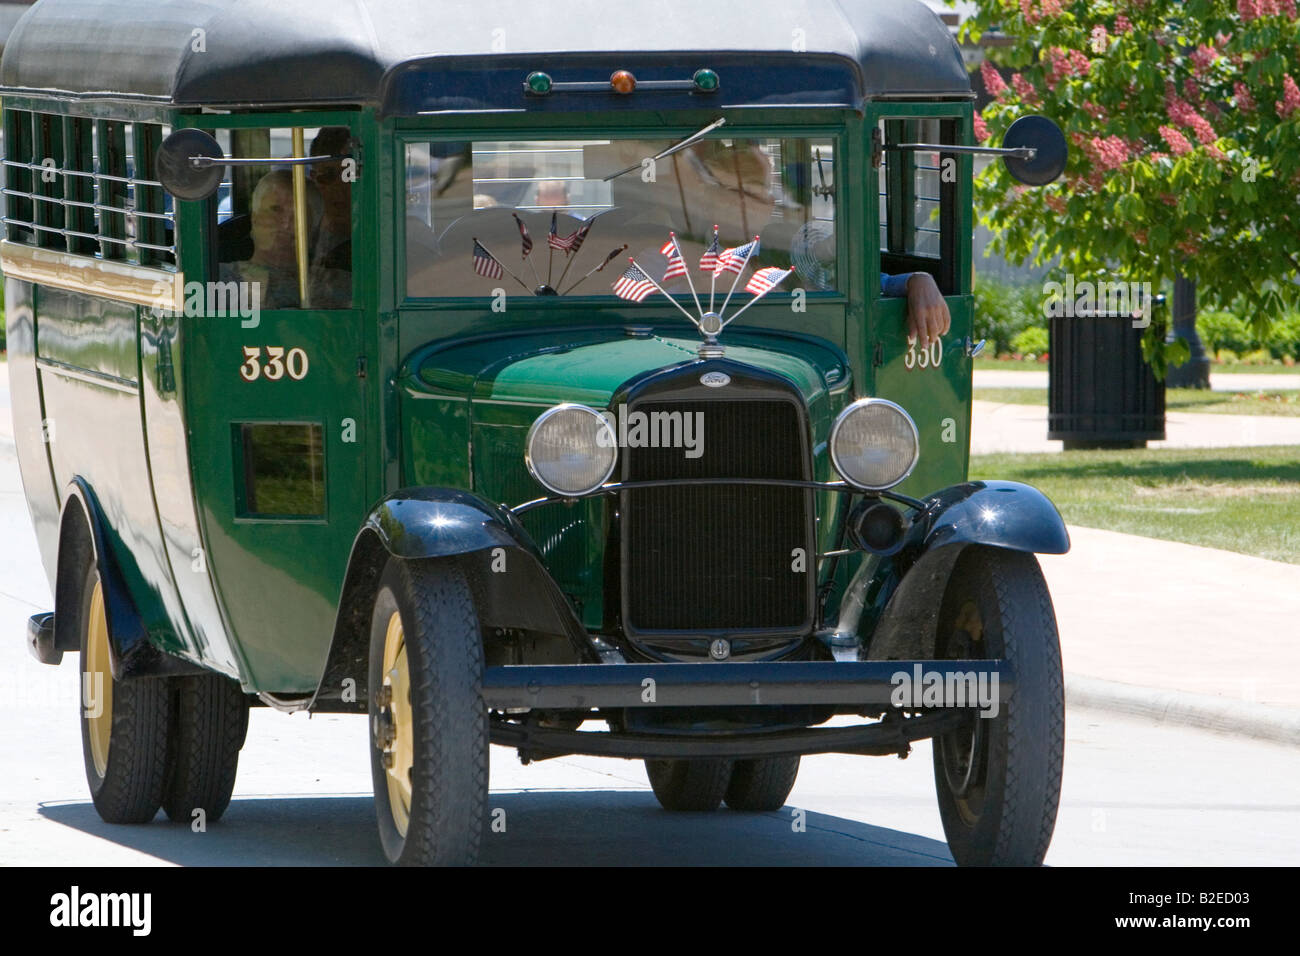 Ford 1932 model aa school bus used today as a taxi in greenfield village at the henry ford in dearborn michigan